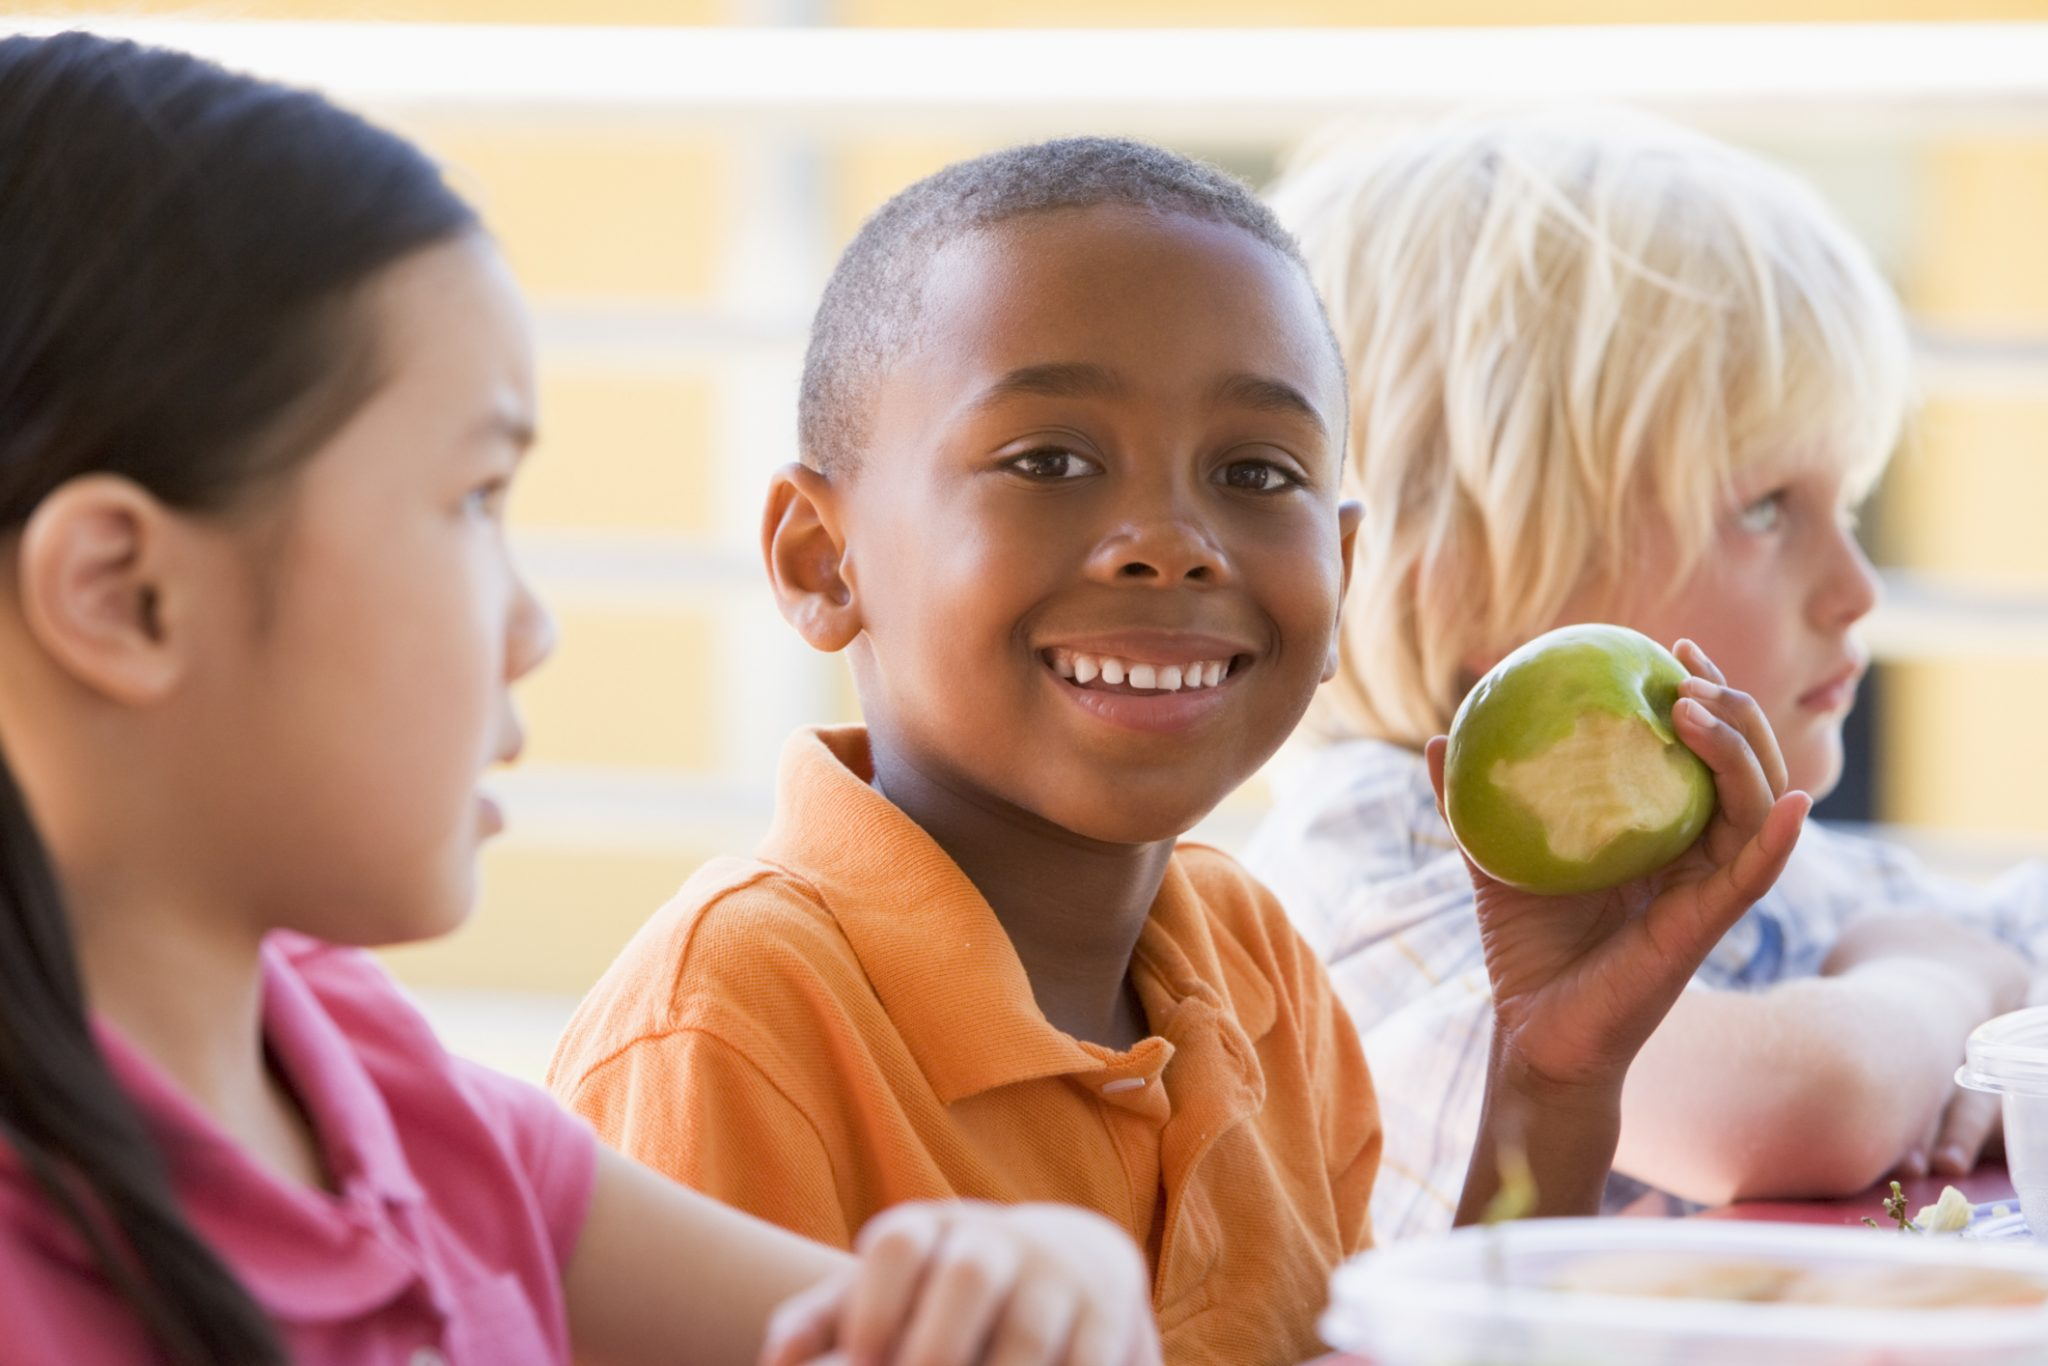 Close to a million Ontario students will have access to healthy food at school again this year thanks in part to the support of SNO and their partners.